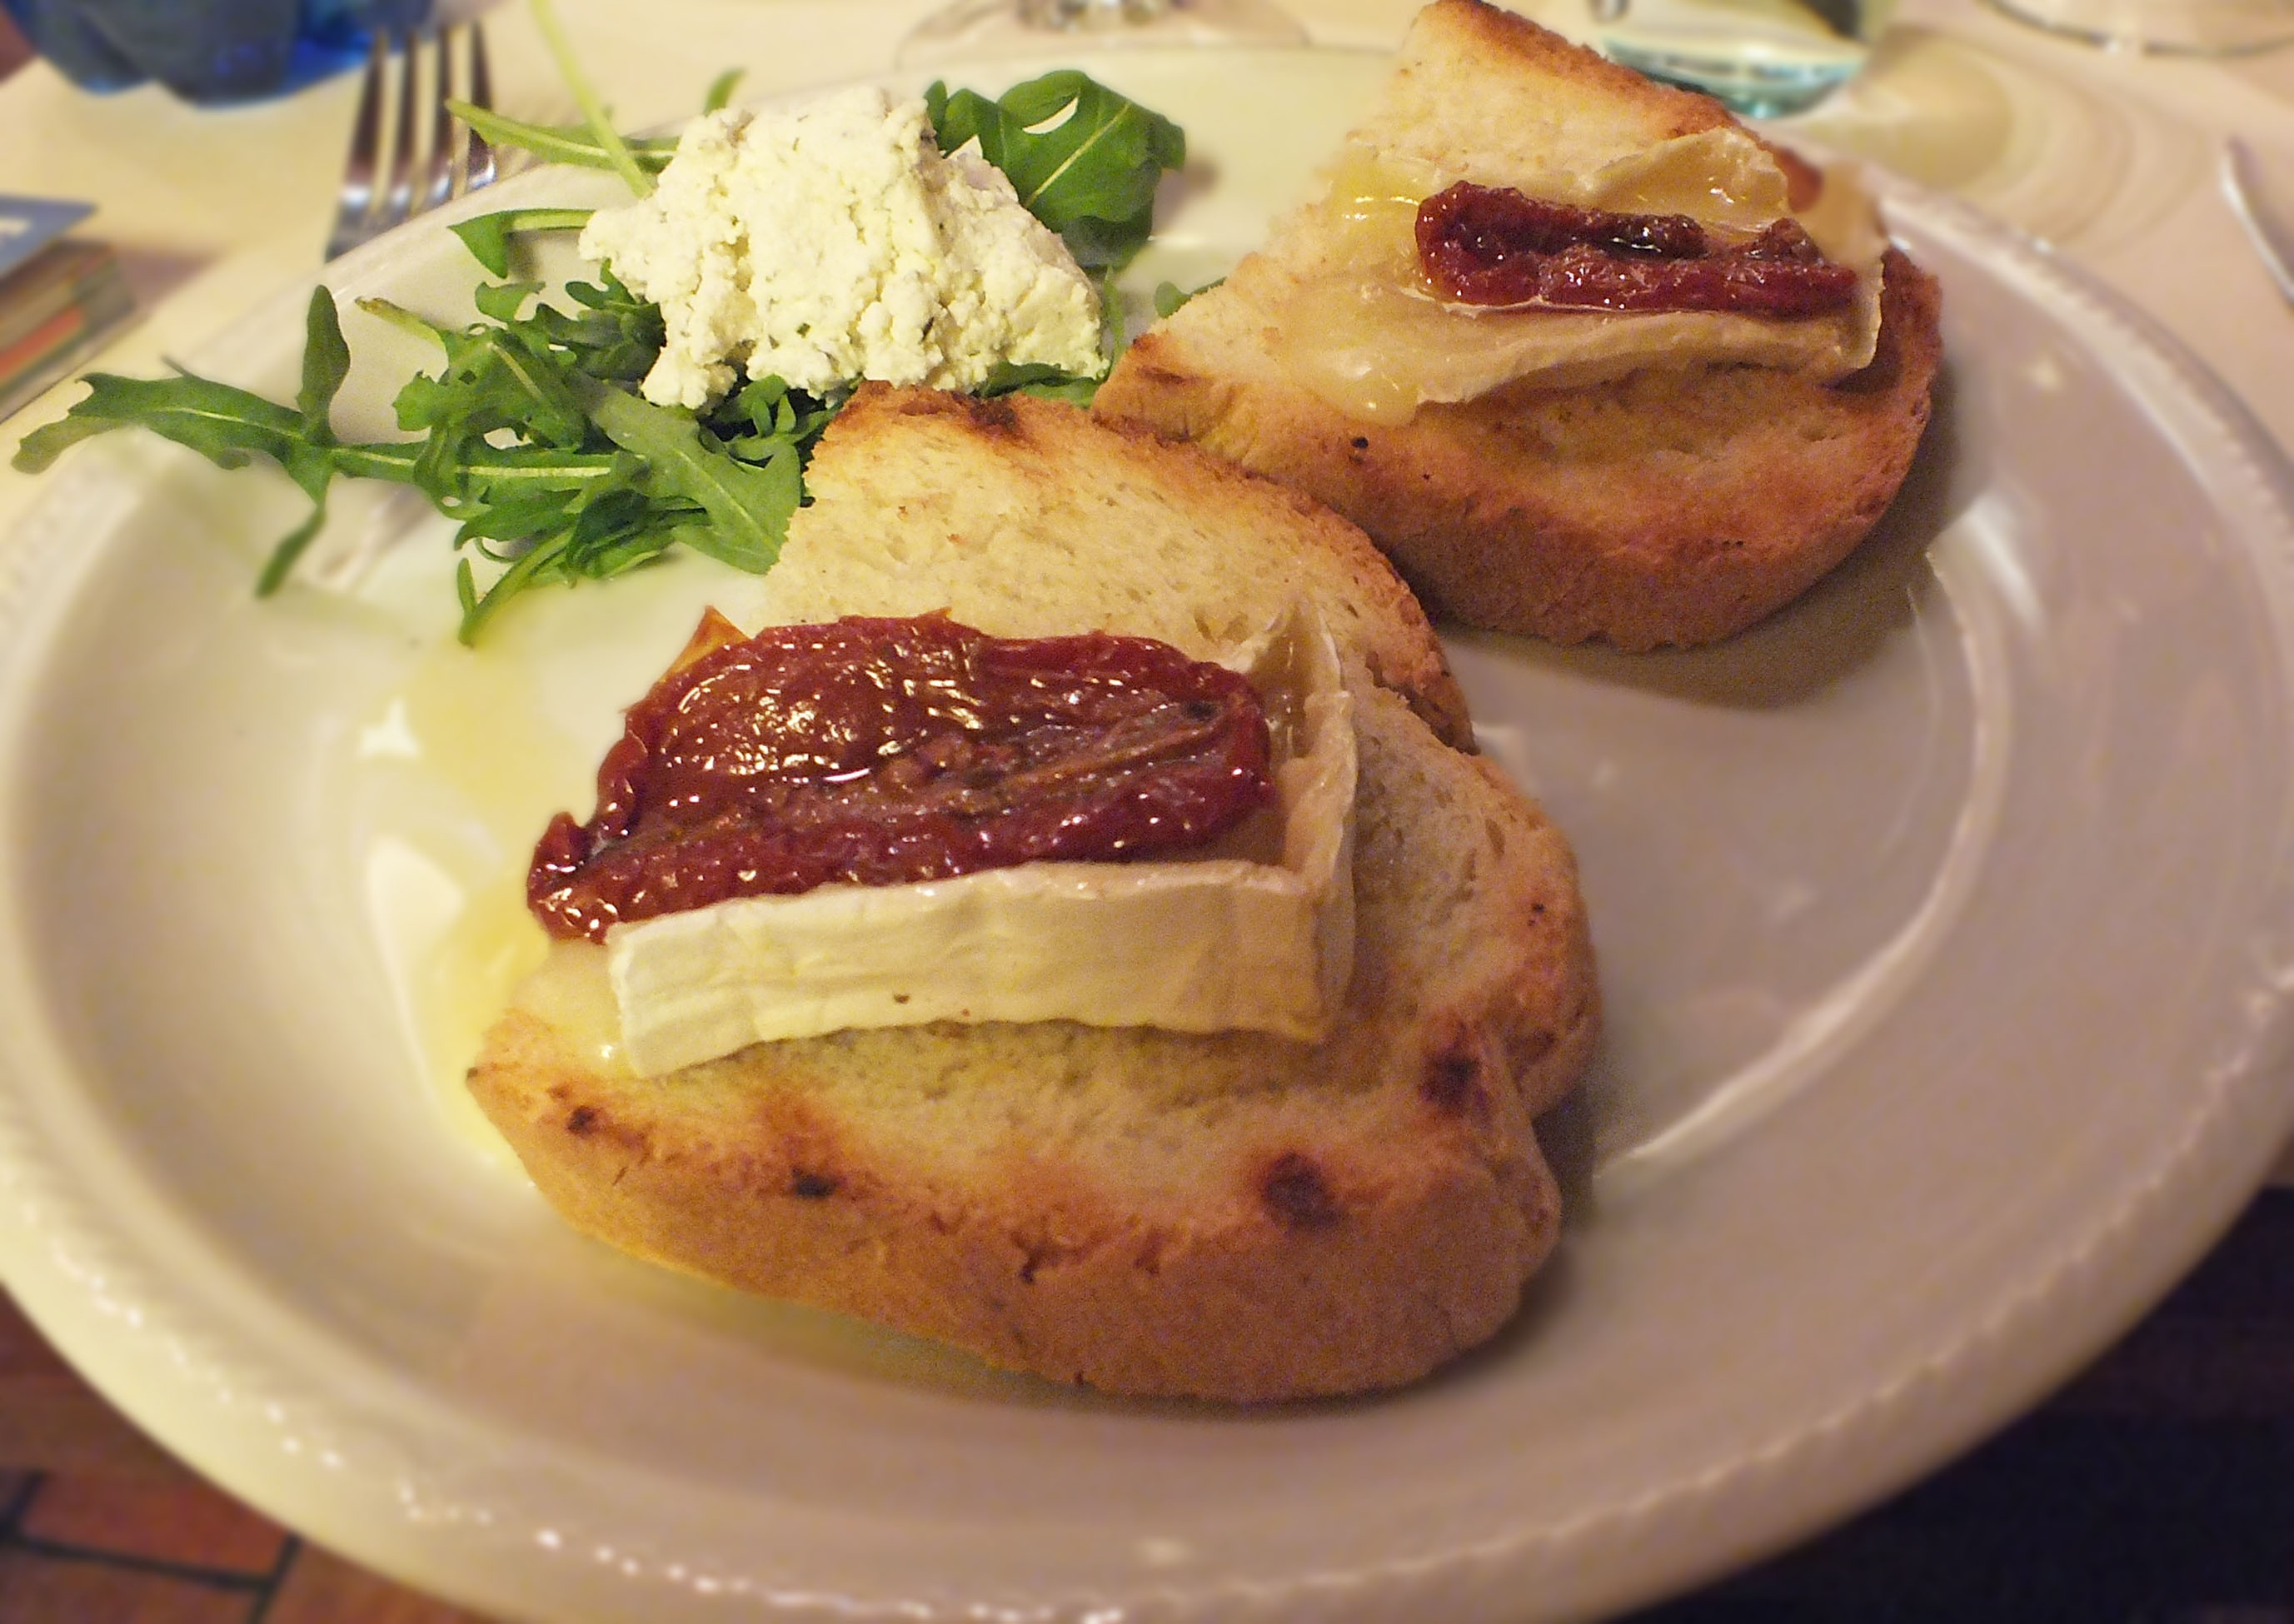 Brie and sundried tomato with ricotta. This was just melting brie ...